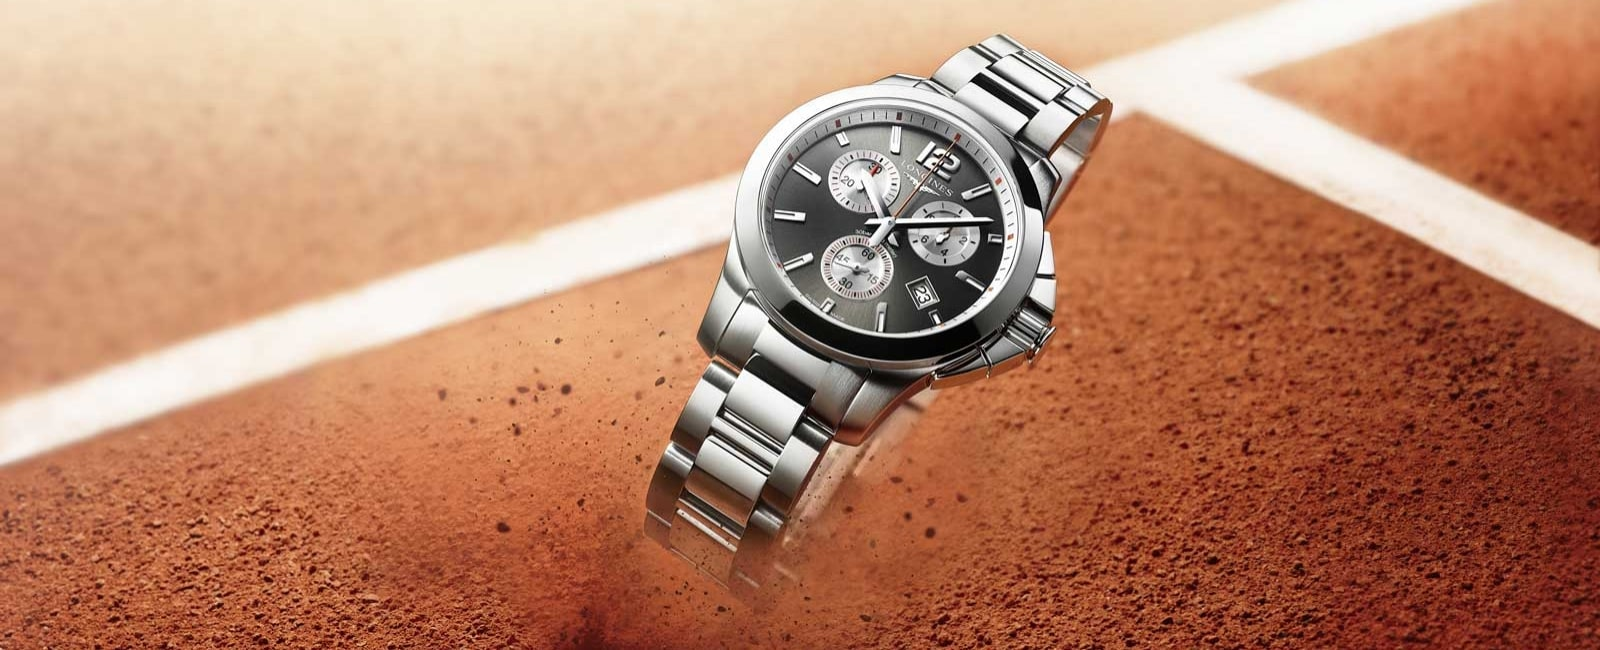 Sporting Elegance Encapsulated in the New Conquest Roland Garros Ladies Model, watch, Longines, Roland Garros, Stefanie Graf, Conquest